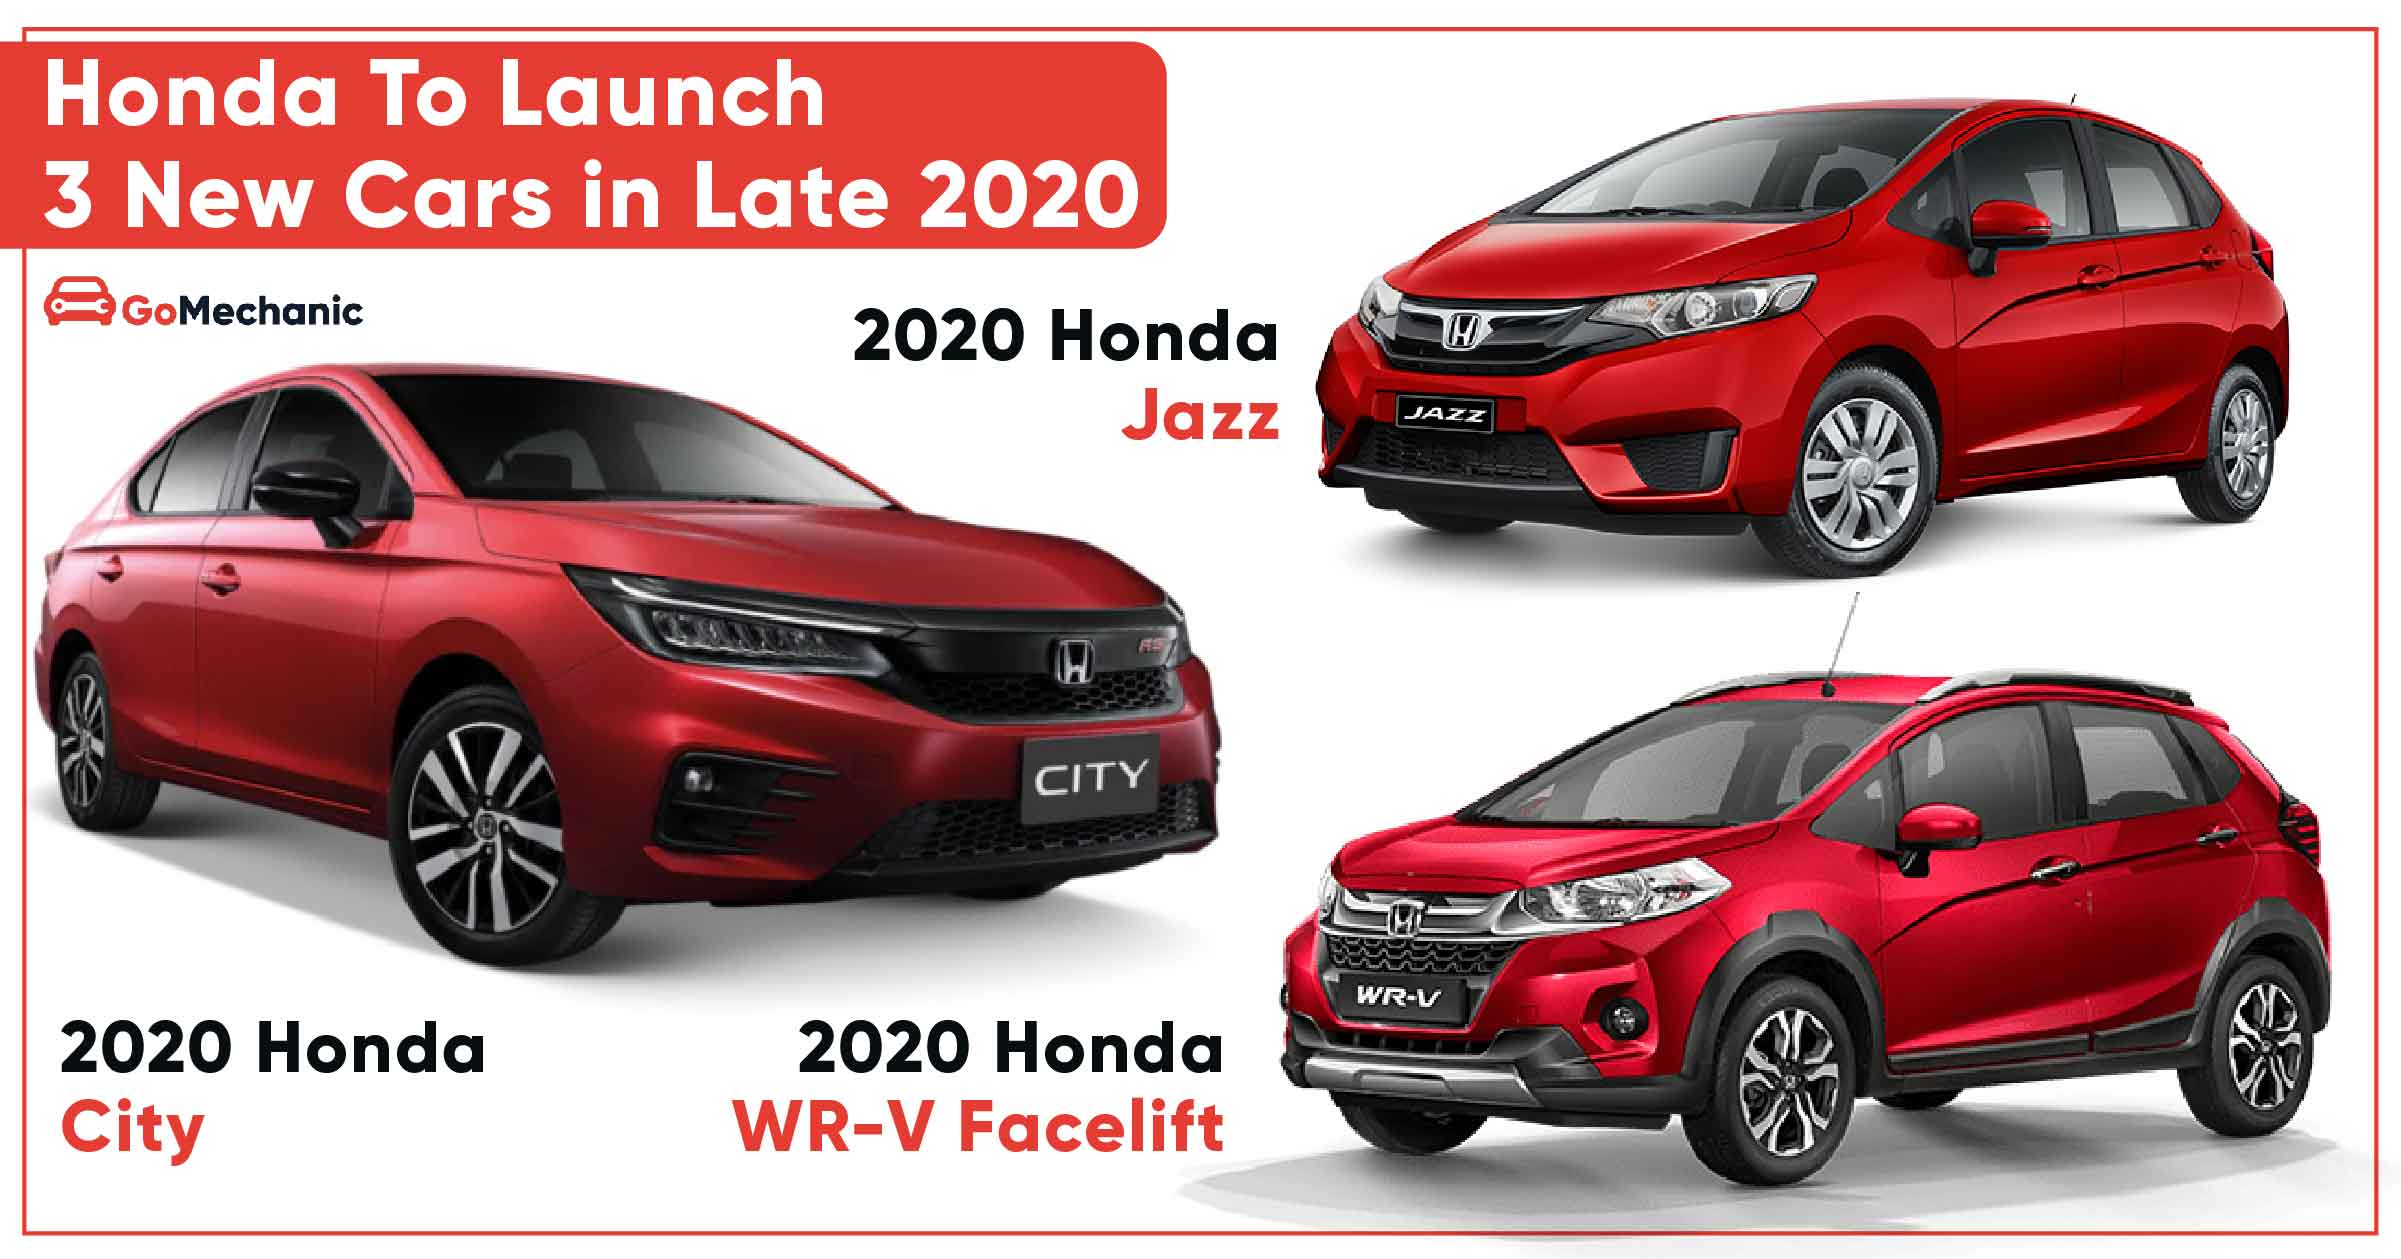 Honda To Launch 3 New Cars In Late 2020